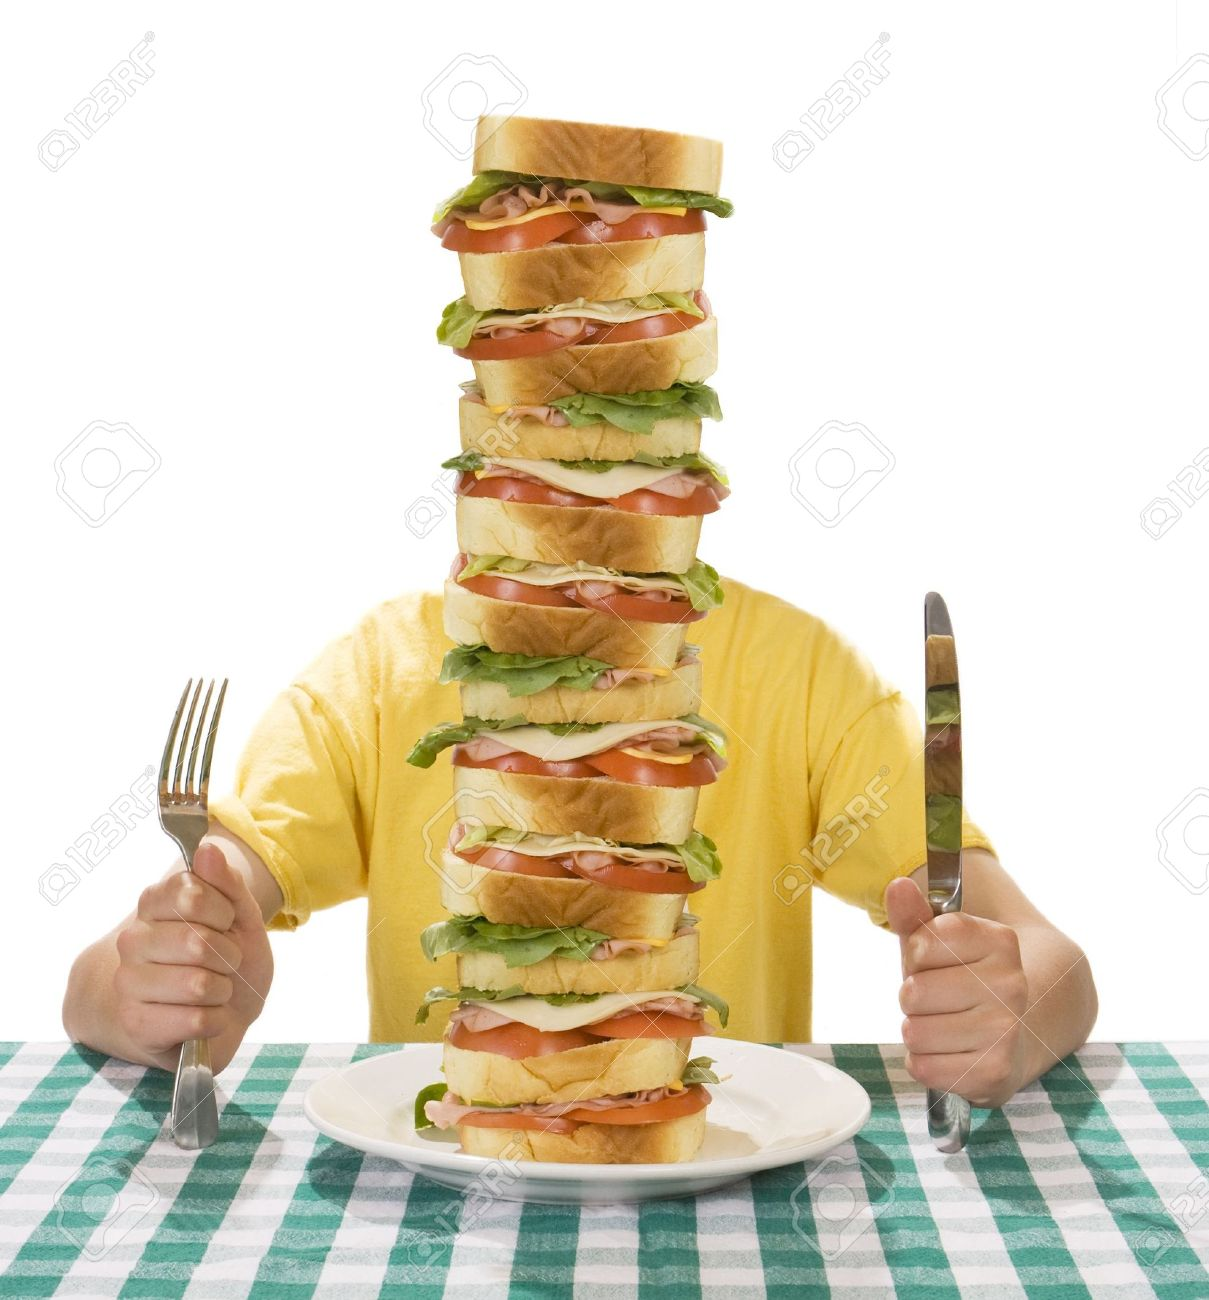 Giant sandwich on a white plate, with hands holding a a knife and fork on a table cloth. Stock Photo - 4759346